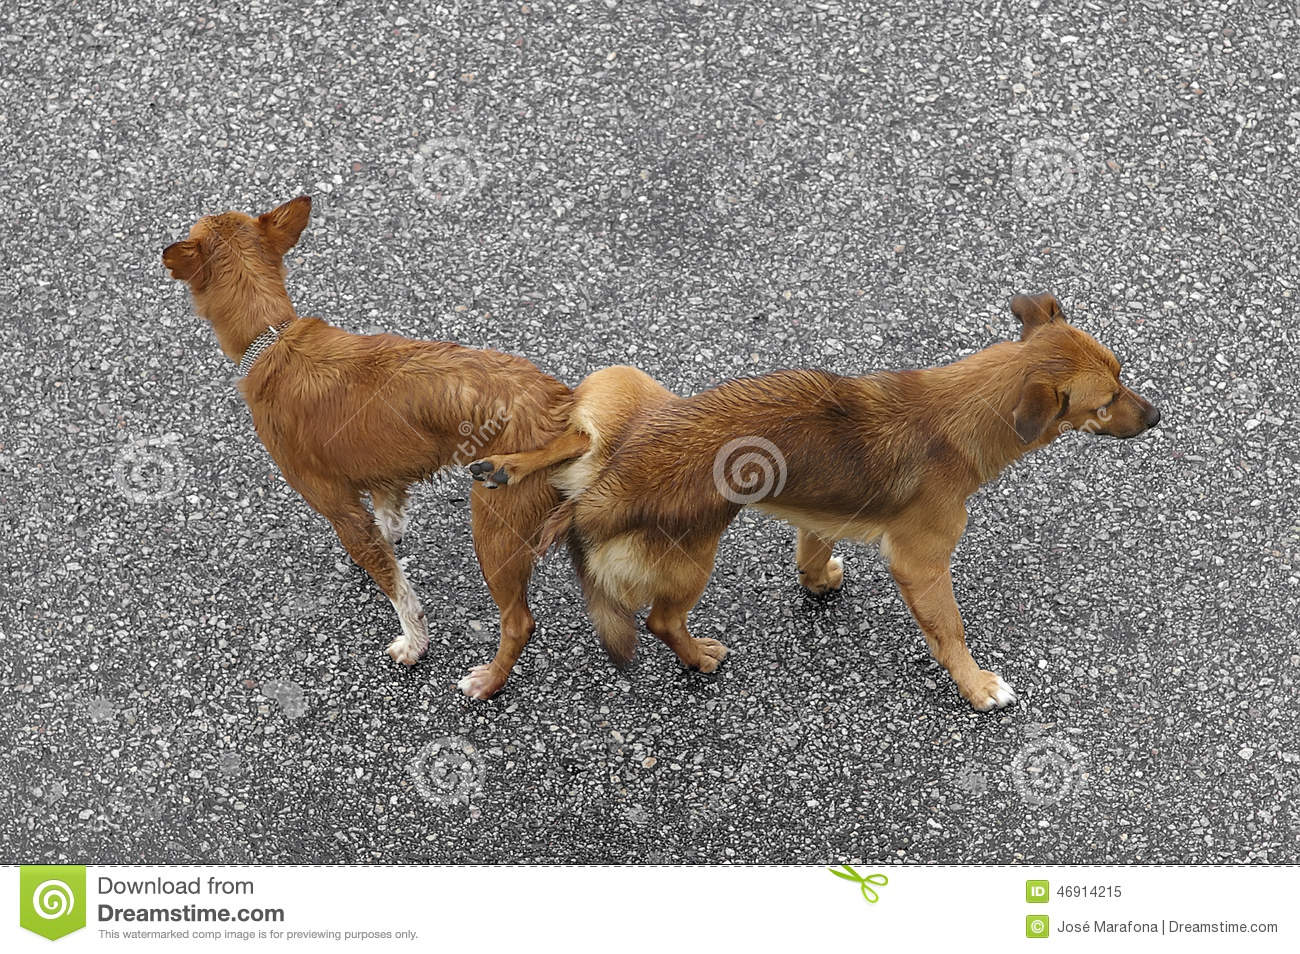 Mating Dogs Stock Photo - Image: 46914215